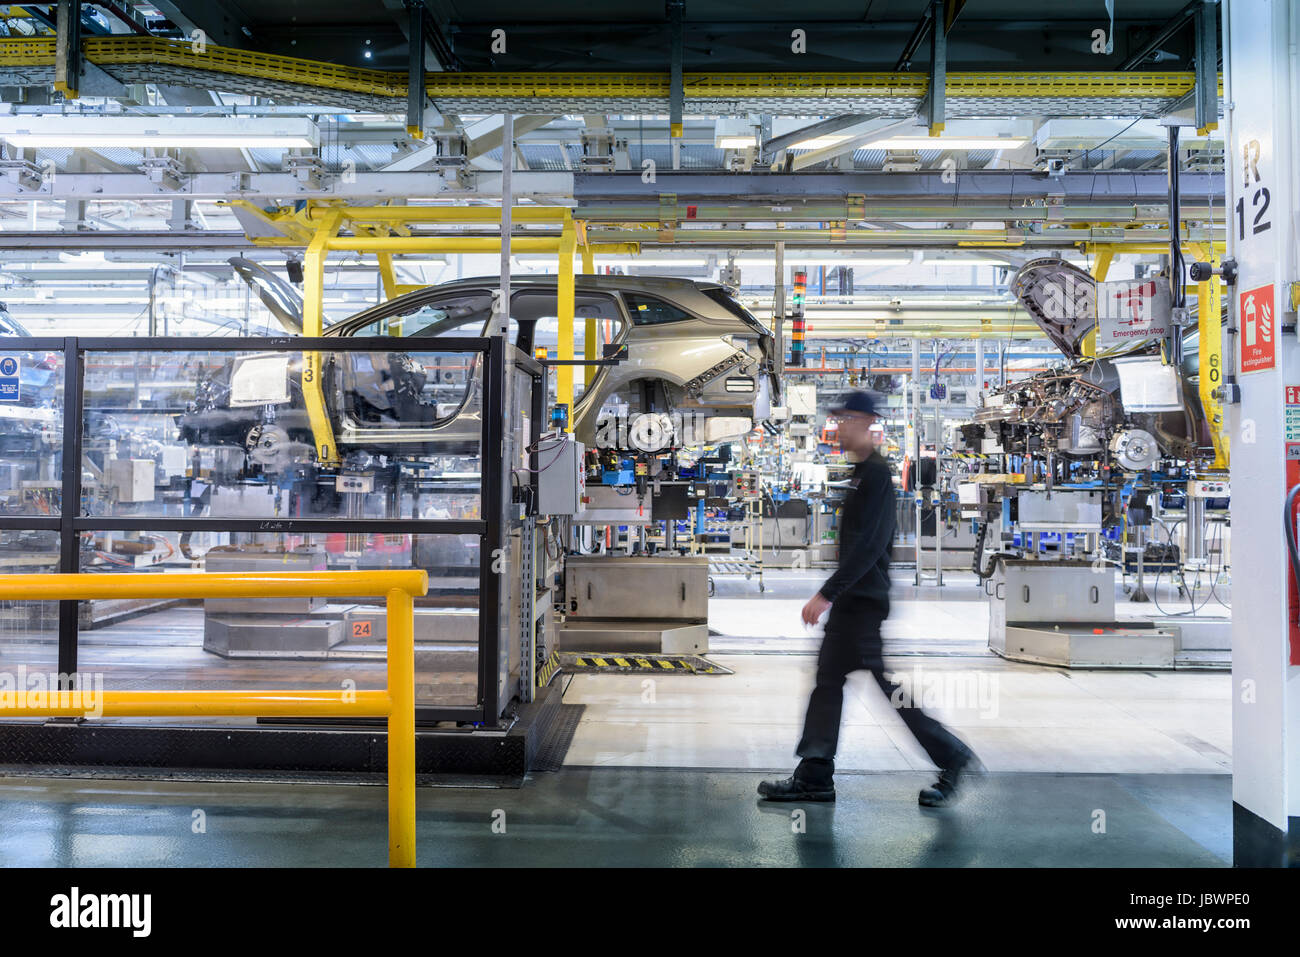 Engineer walking past car production line in car factory - Stock Image